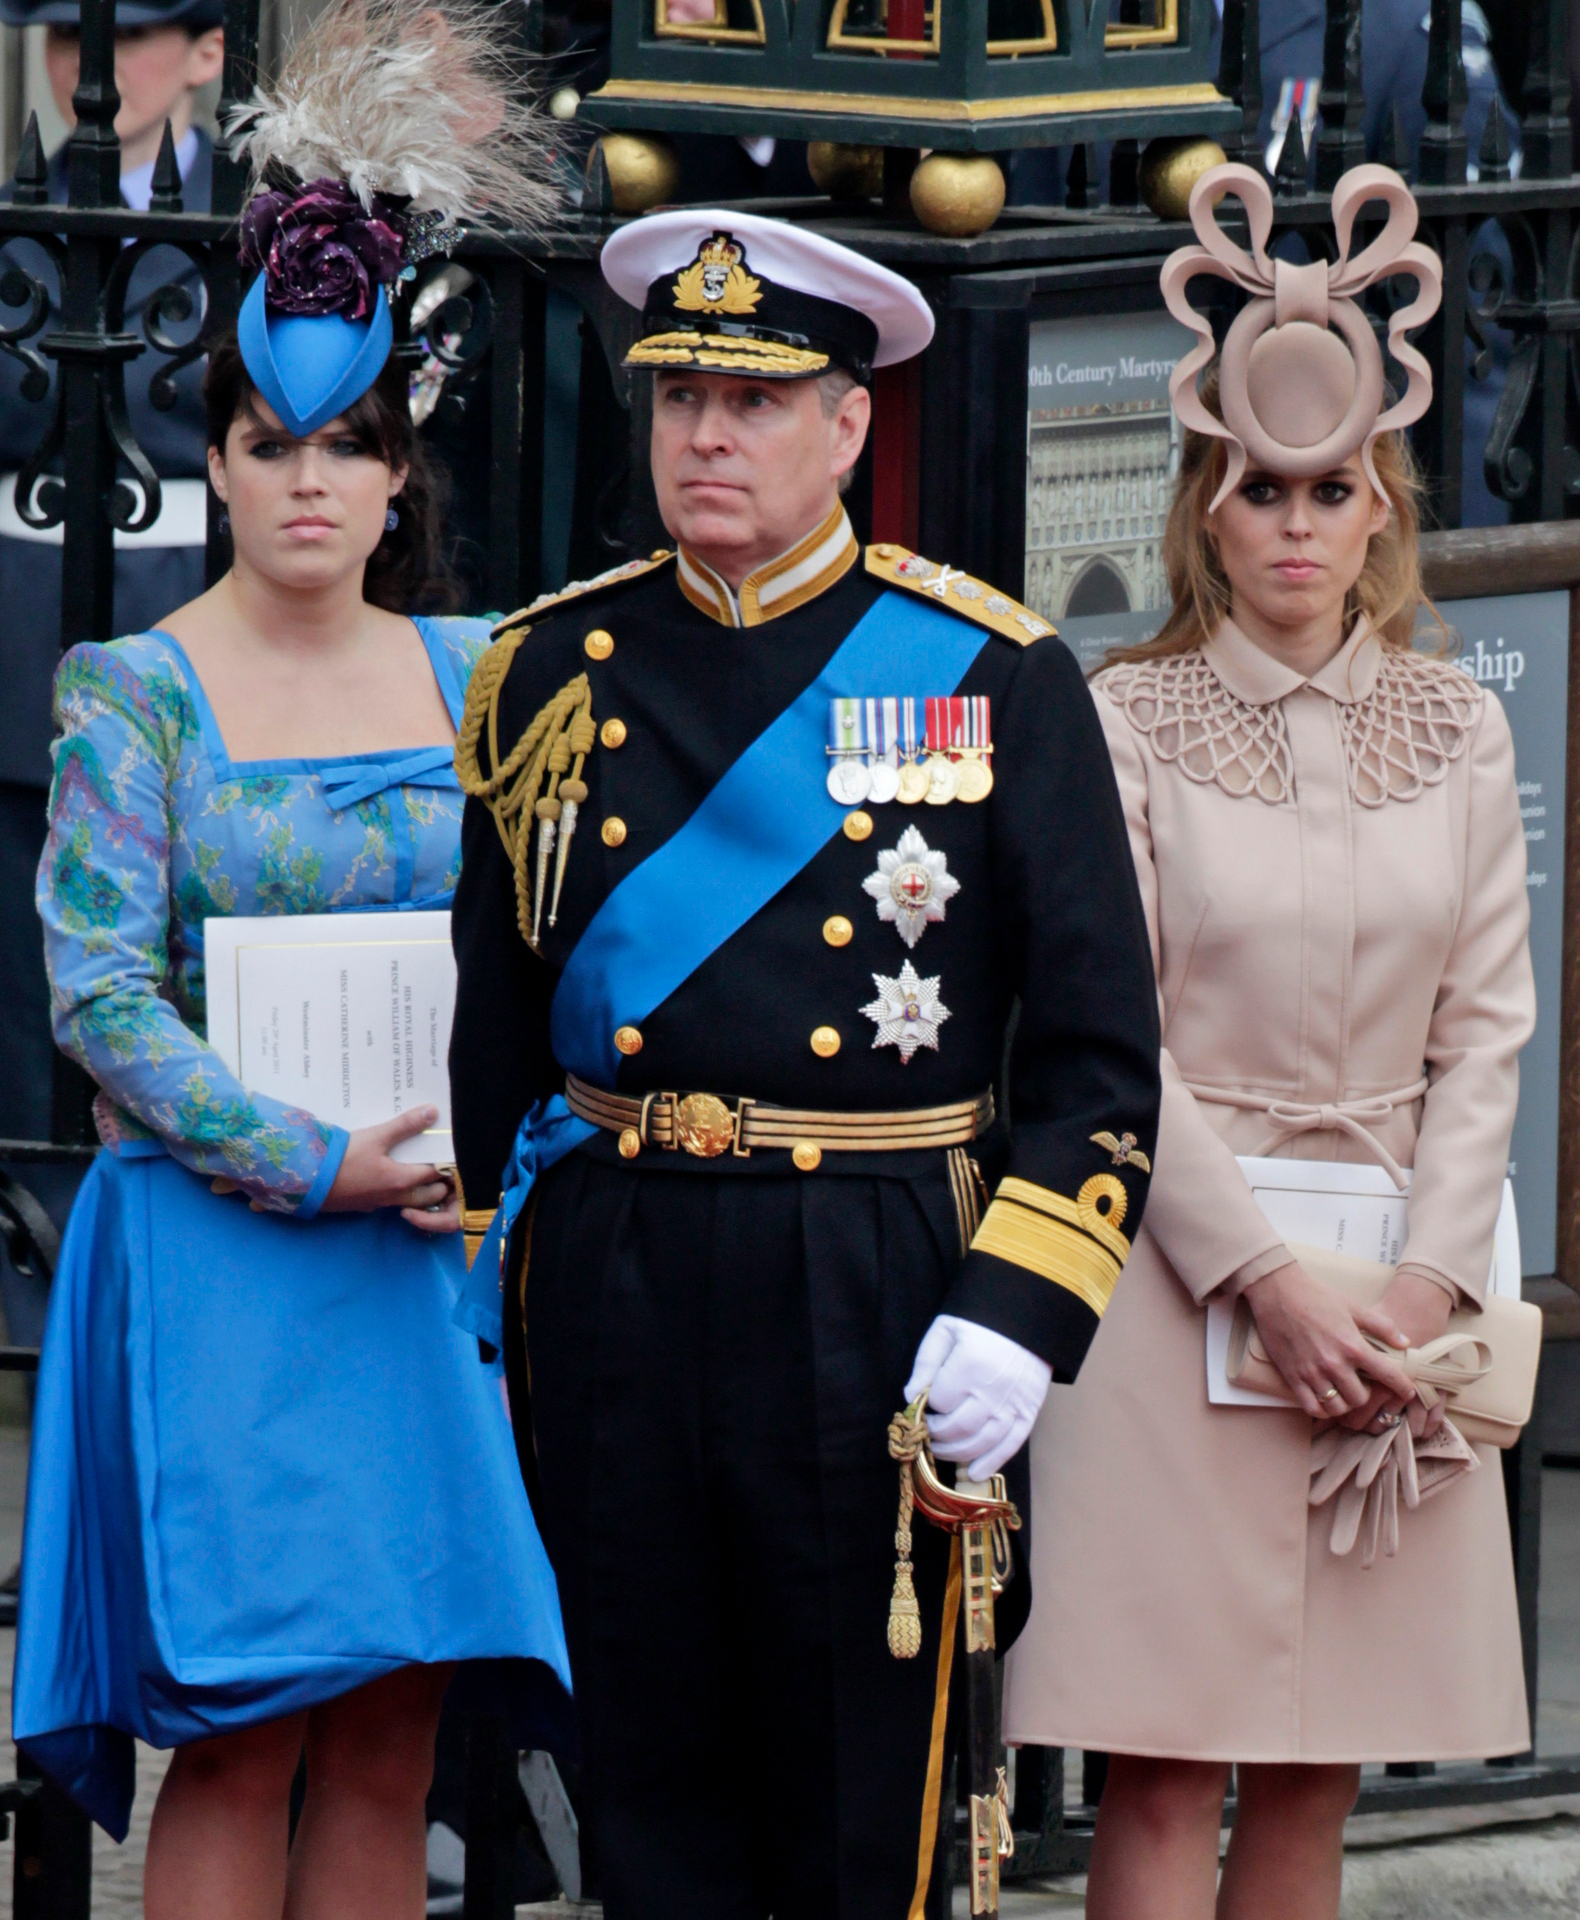 Prince Andrew accuser's message to Princesses Beatrice and Eugenie